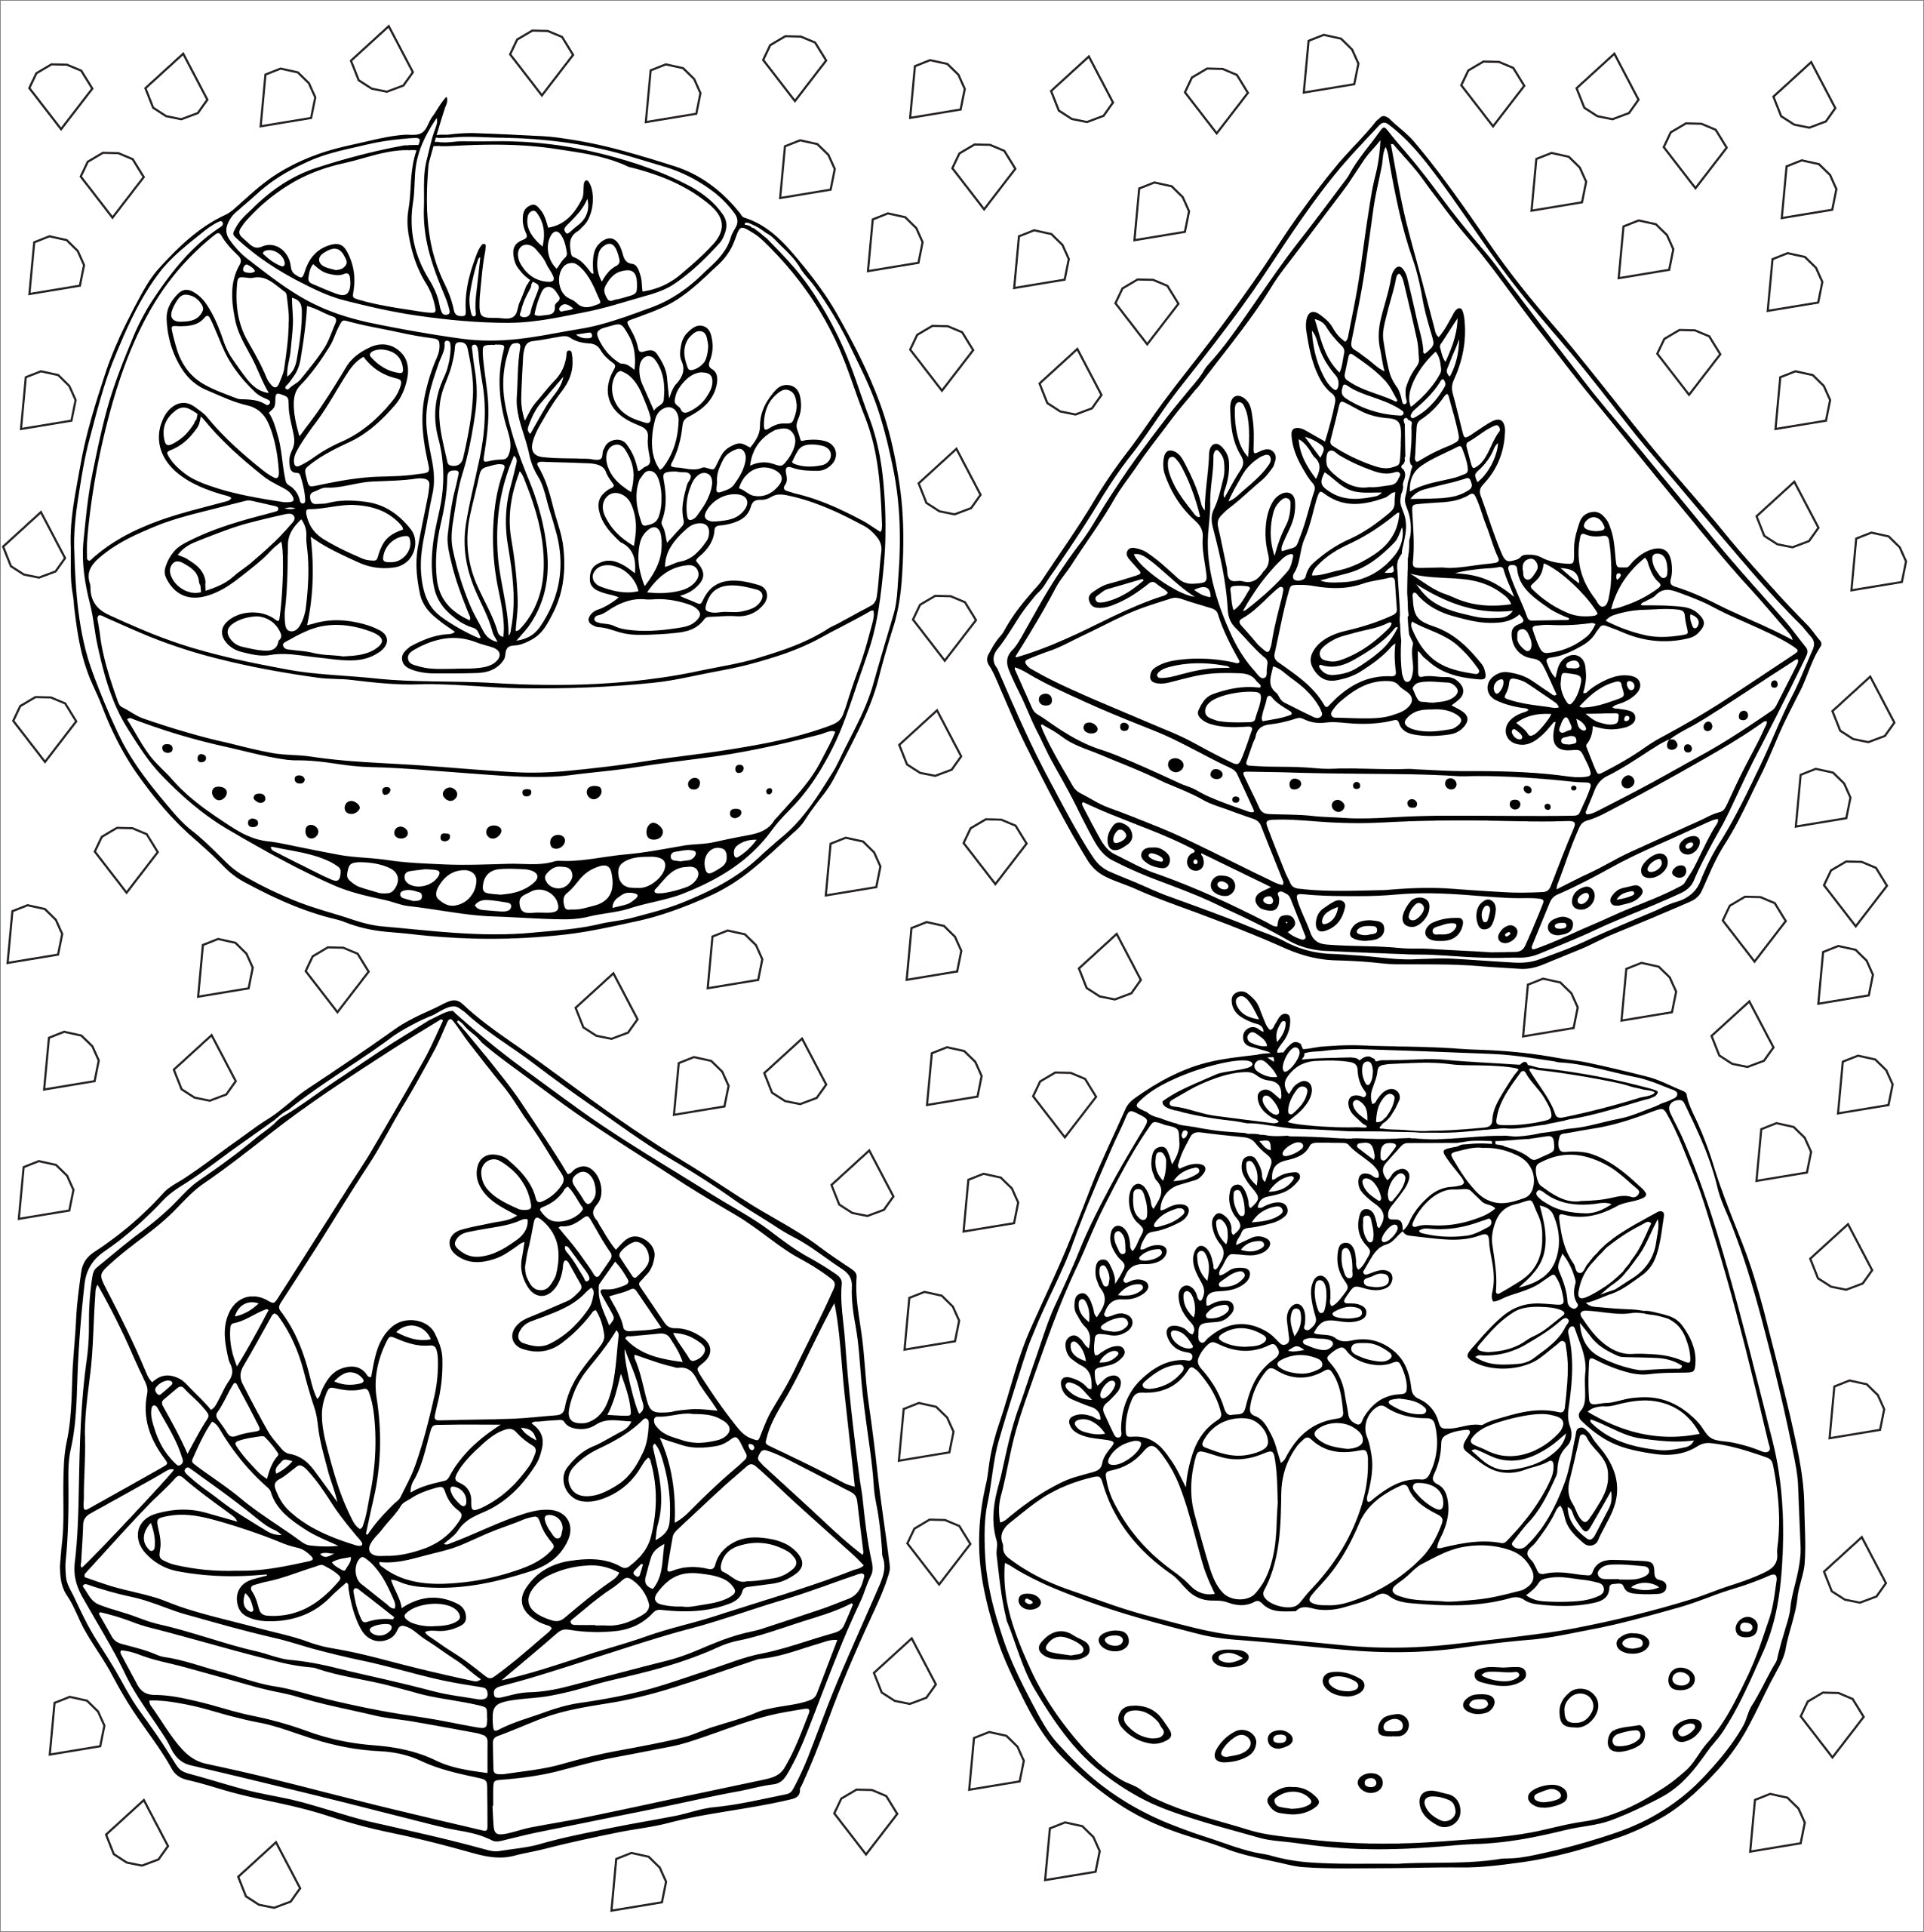 Succulents - Artist's Coloring Book